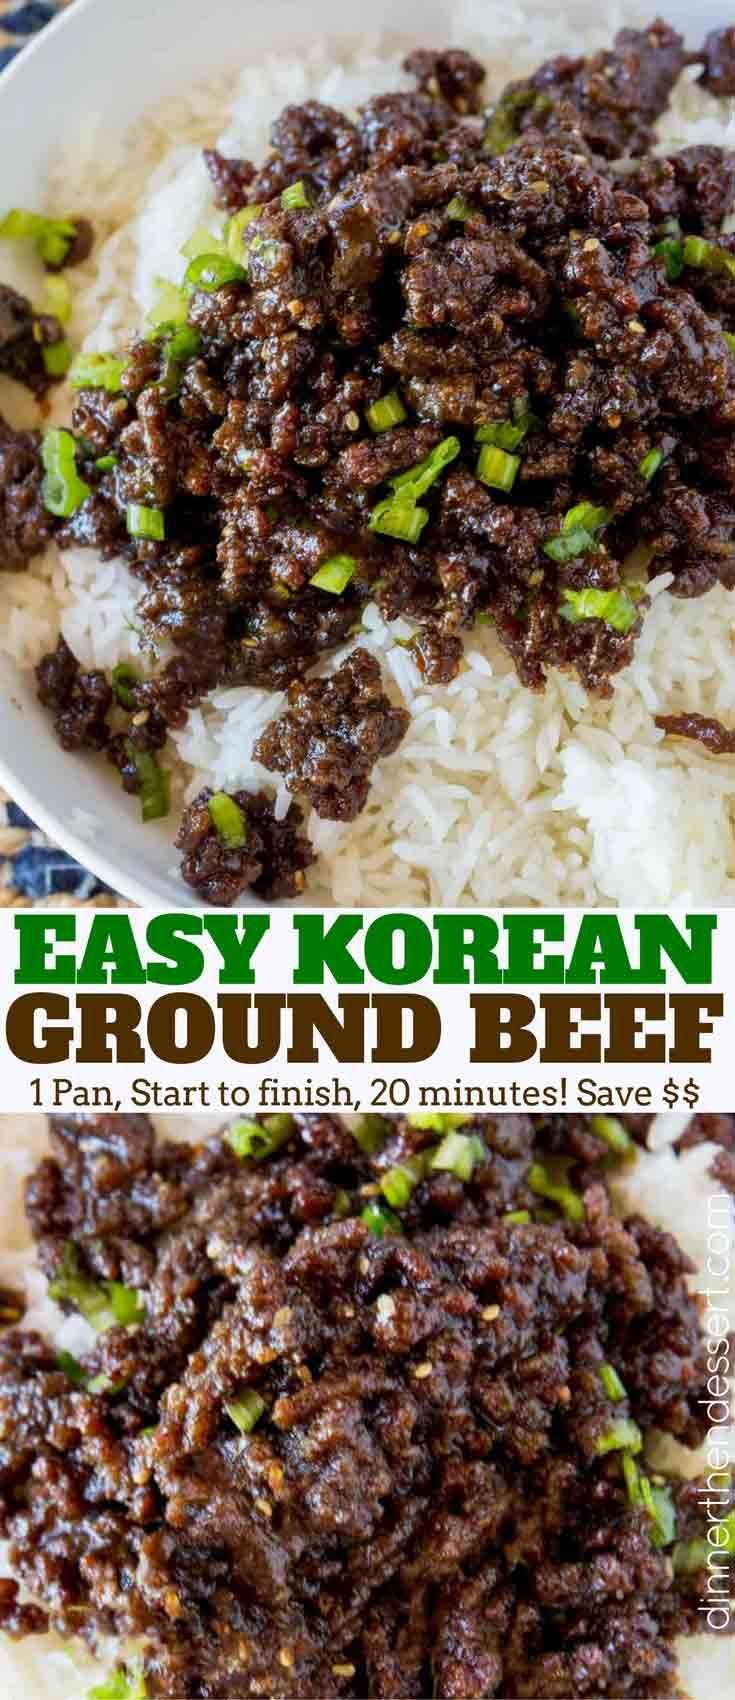 Truffled Scallop Toast Clean Eating Snacks Recipe Recipes Beef Recipes Easy Korean Ground Beef